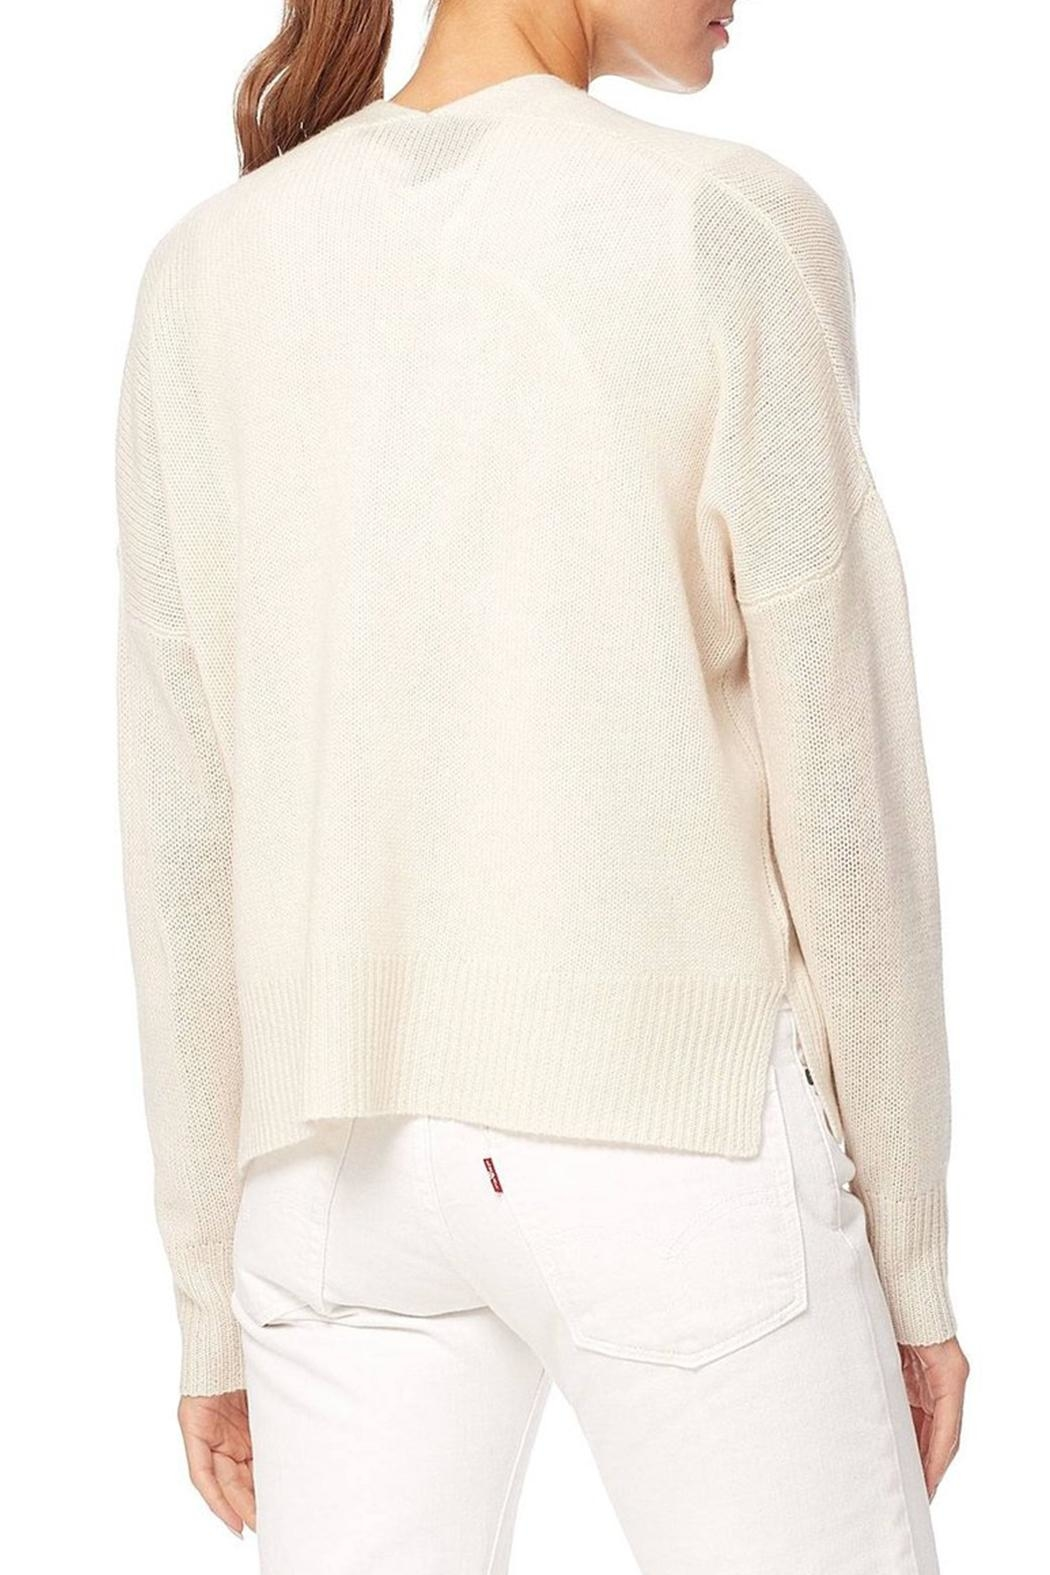 360 Cashmere Florence Cashmere Cardigan - Front Full Image